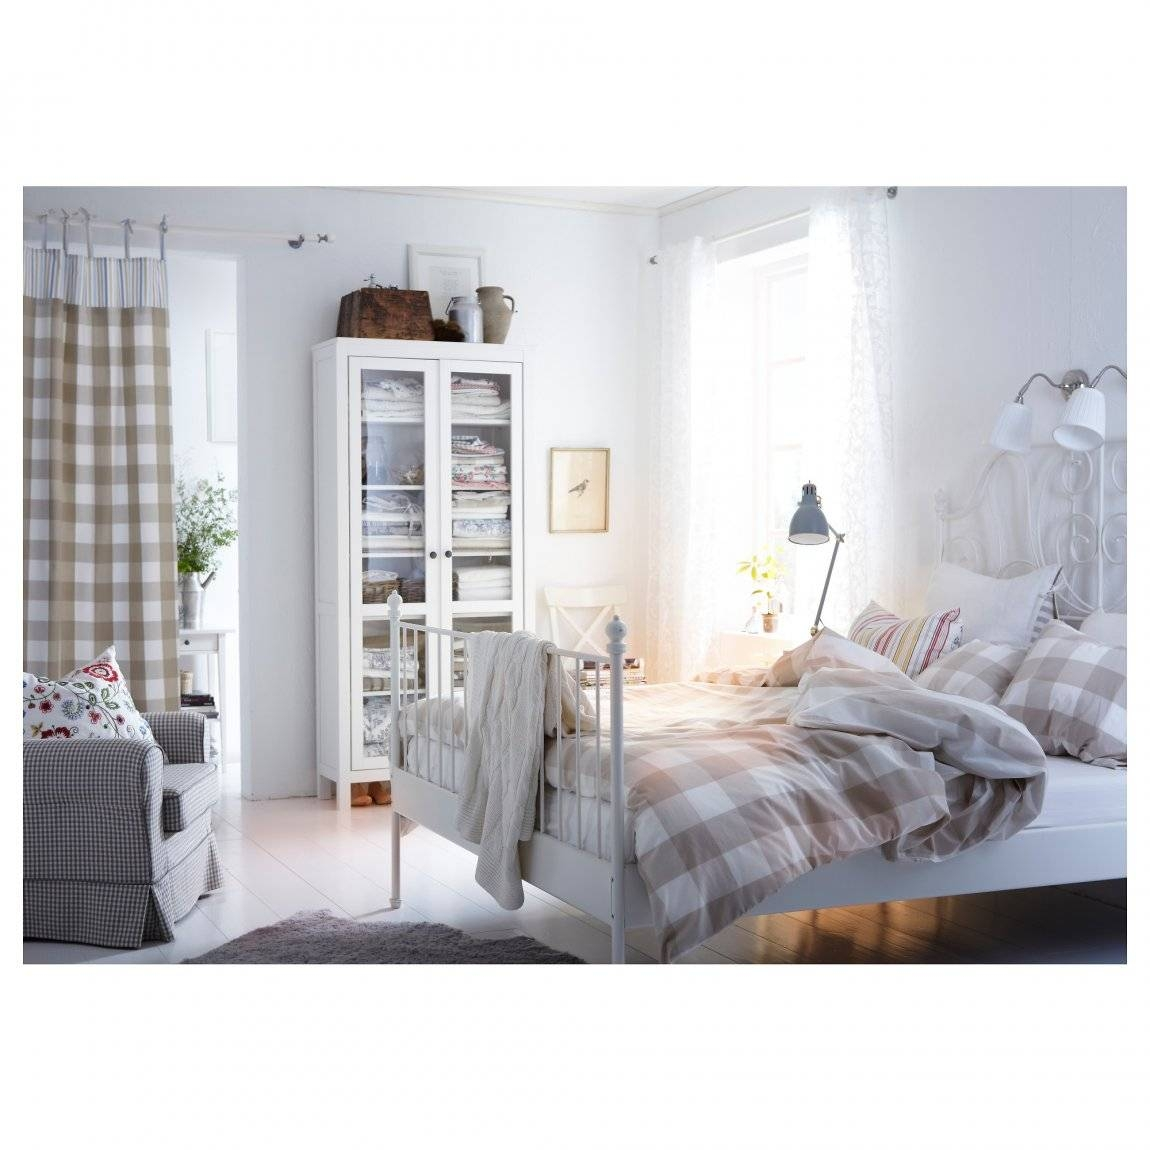 Single Wardrobe Bedroom Sets Wardrobes With Sliding Doors Chest Of throughout Cheap Wardrobes And Chest Of Drawers (Image 12 of 15)